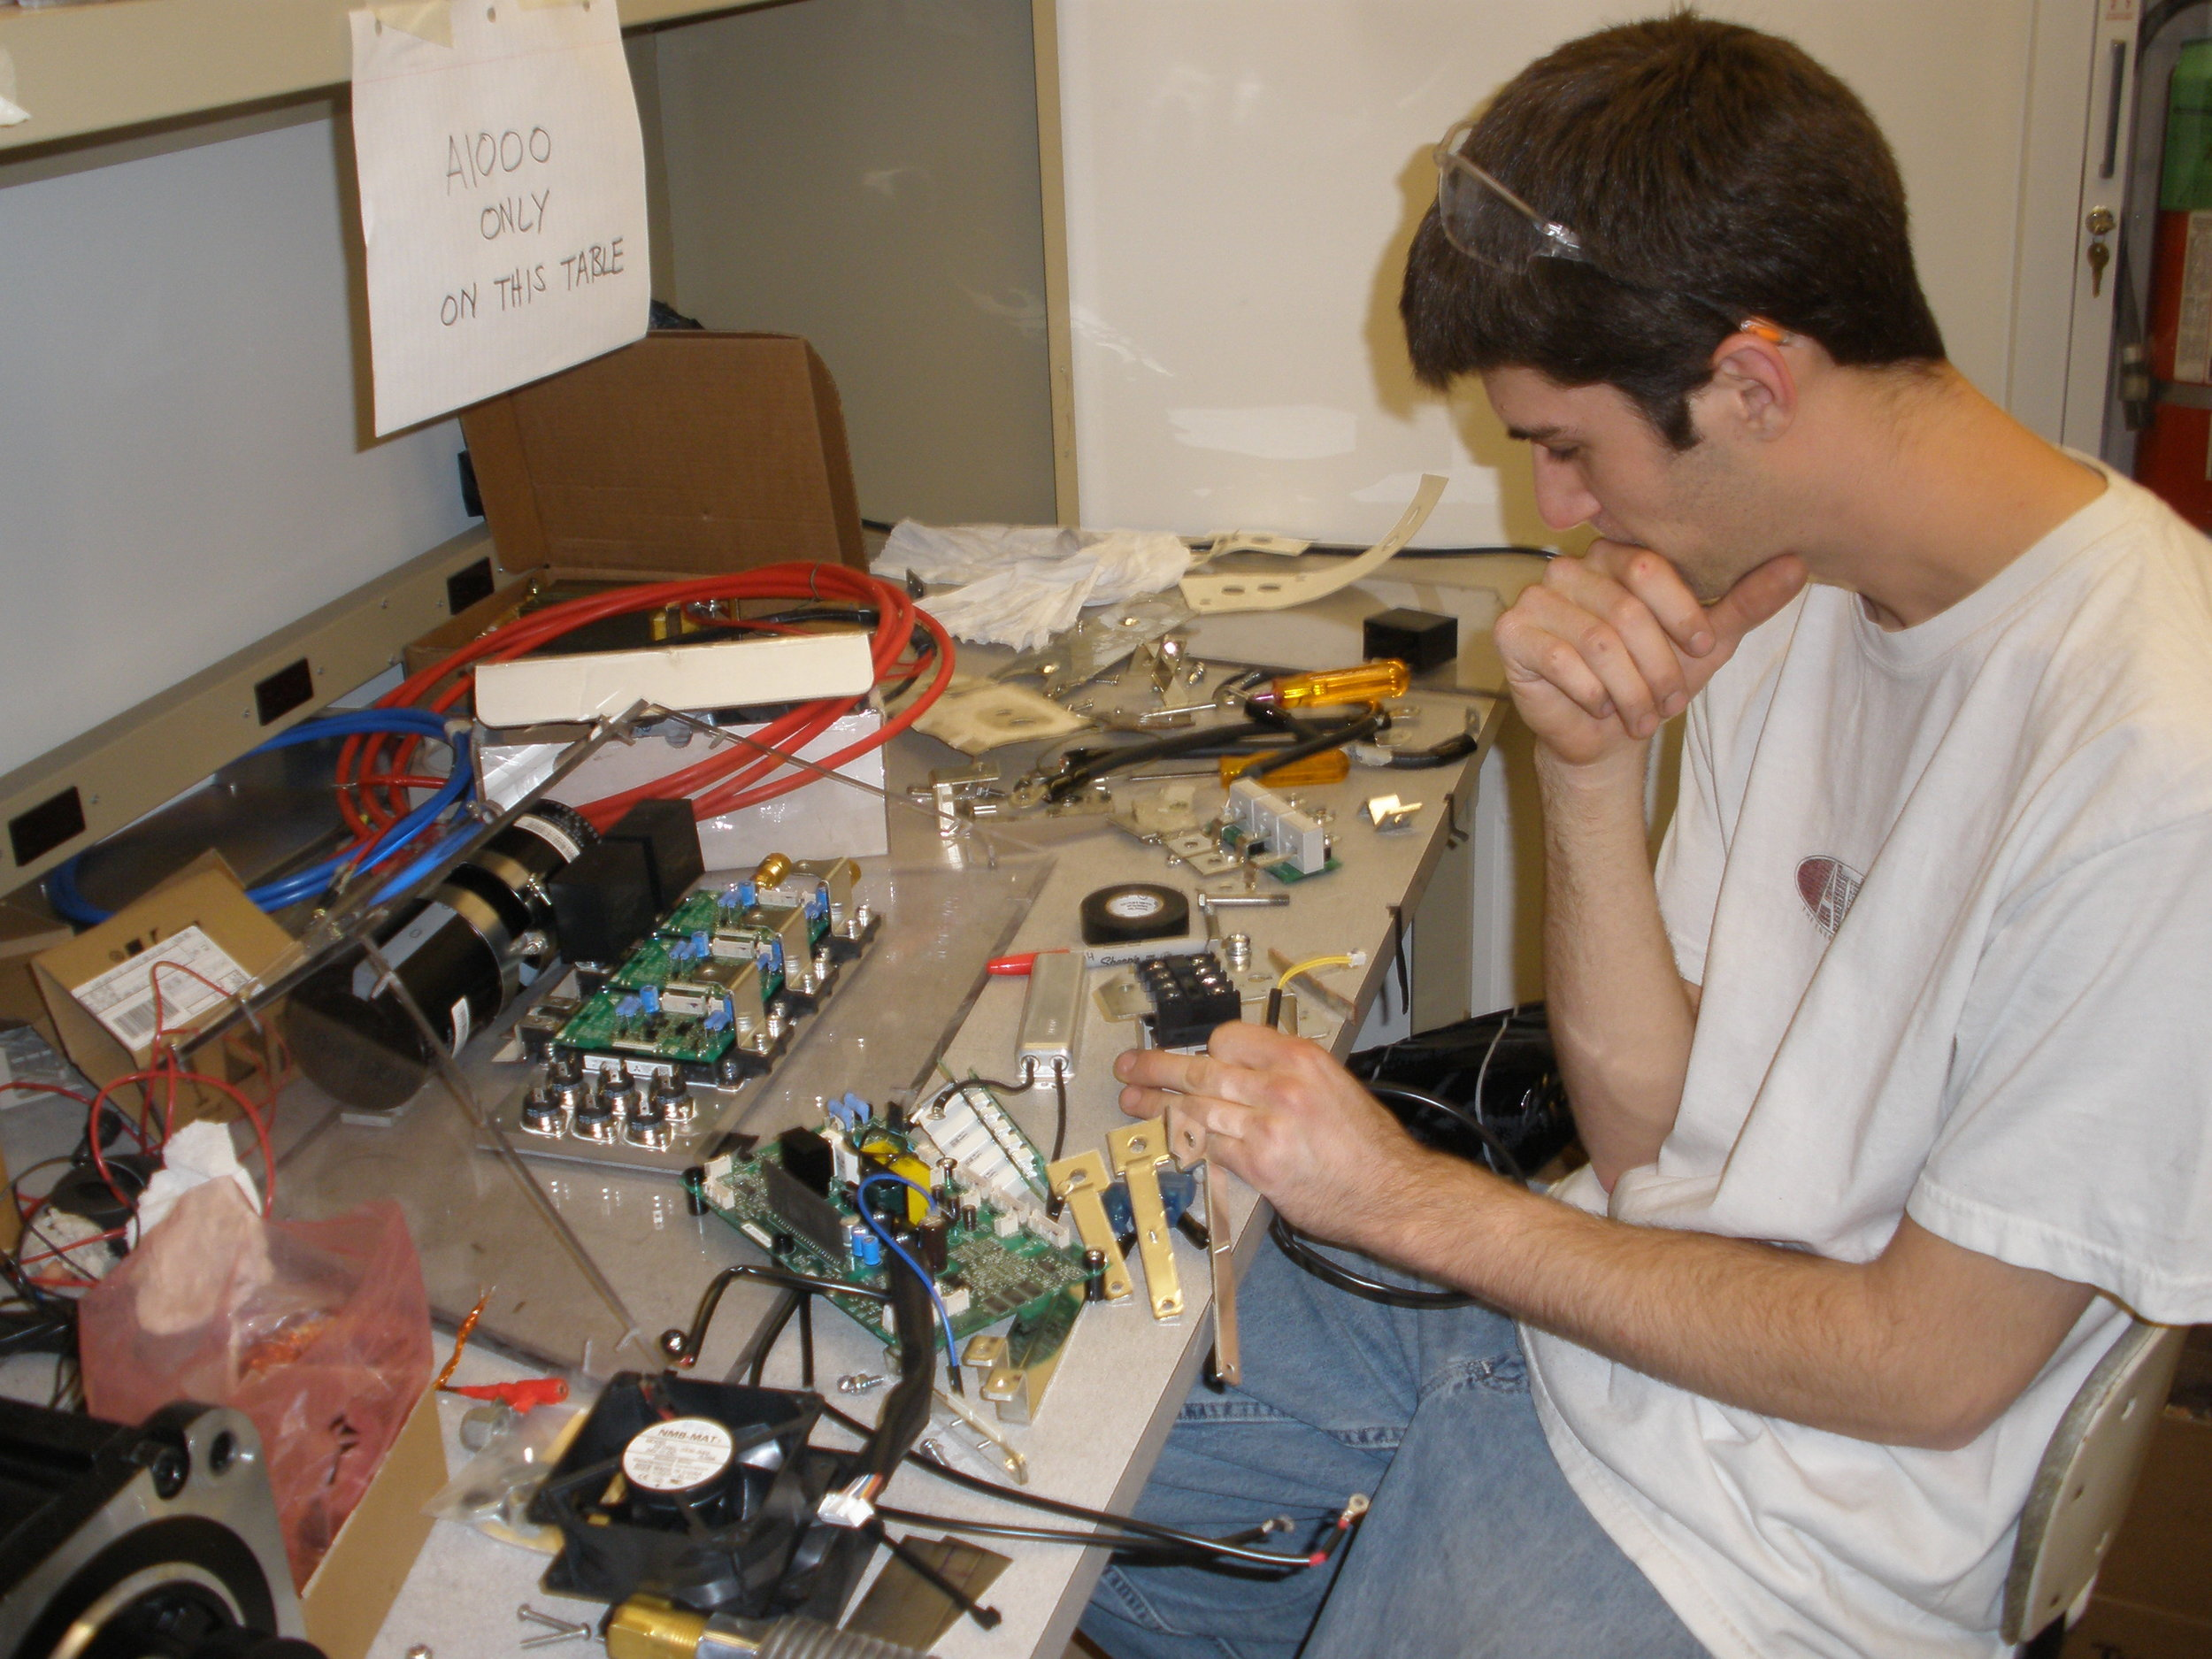 Assembling the repackaged A1000 motor drive